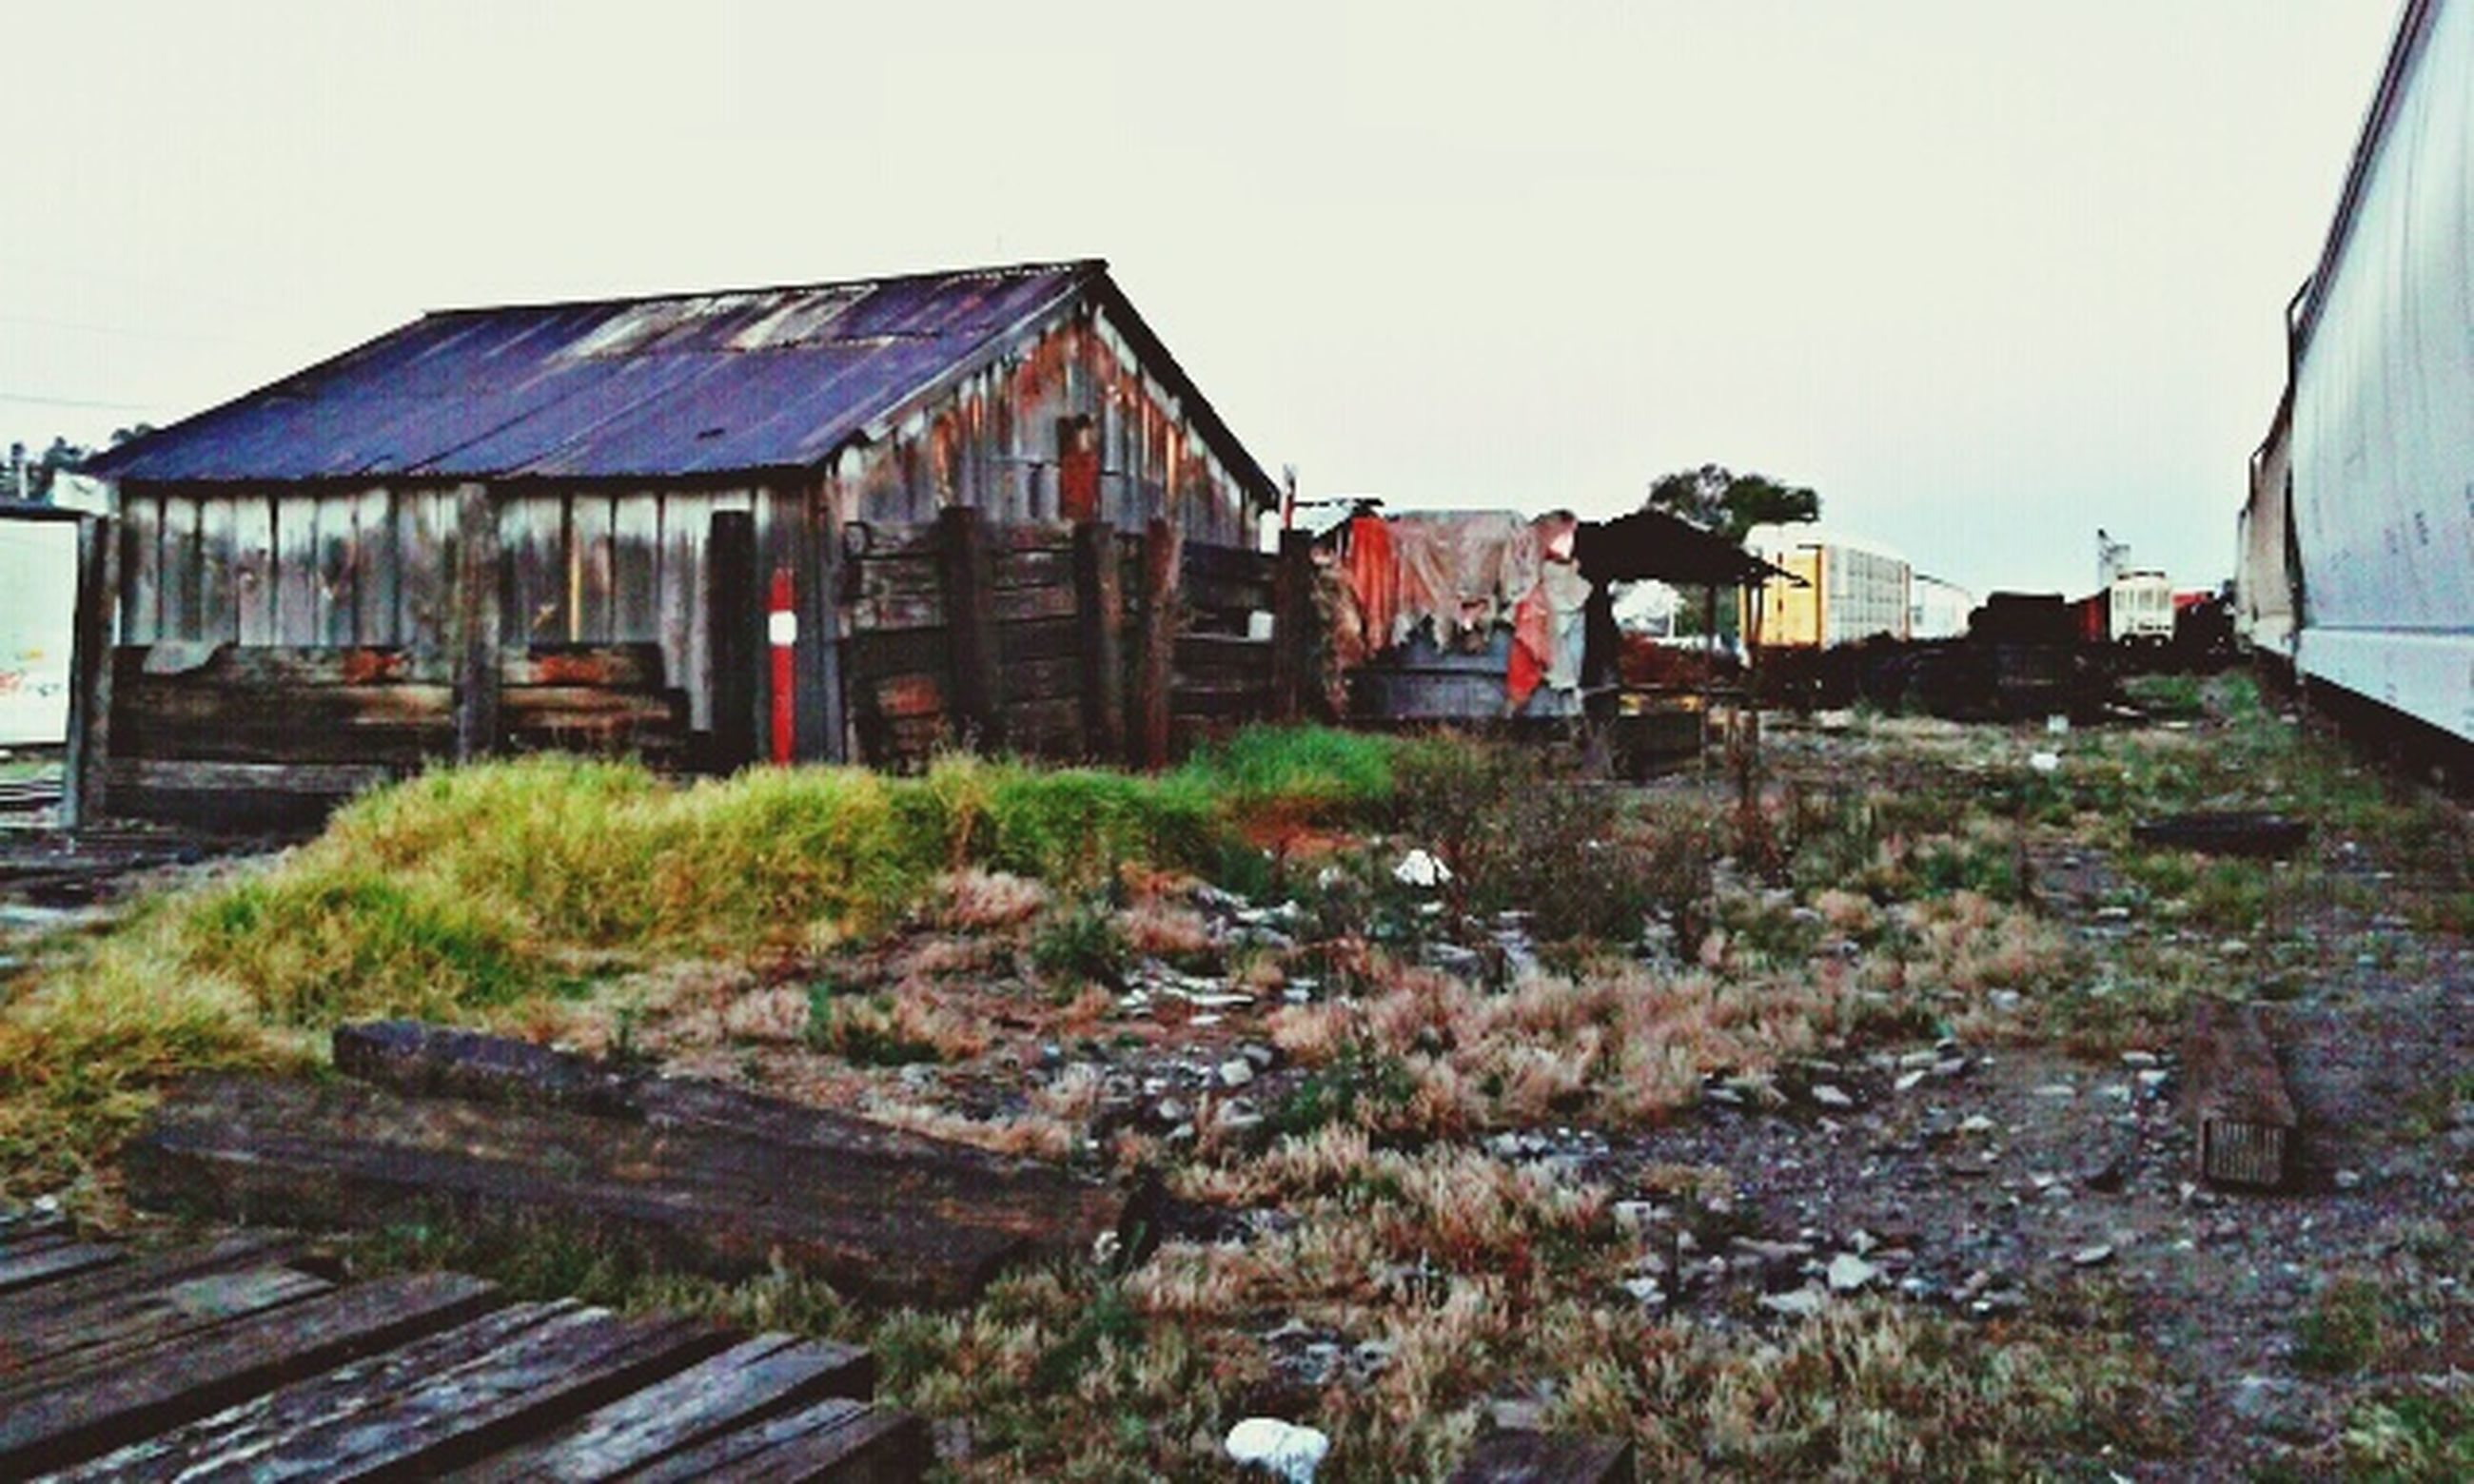 building exterior, built structure, architecture, house, clear sky, abandoned, residential structure, obsolete, damaged, old, wood - material, village, residential building, day, hut, sky, run-down, deterioration, outdoors, no people